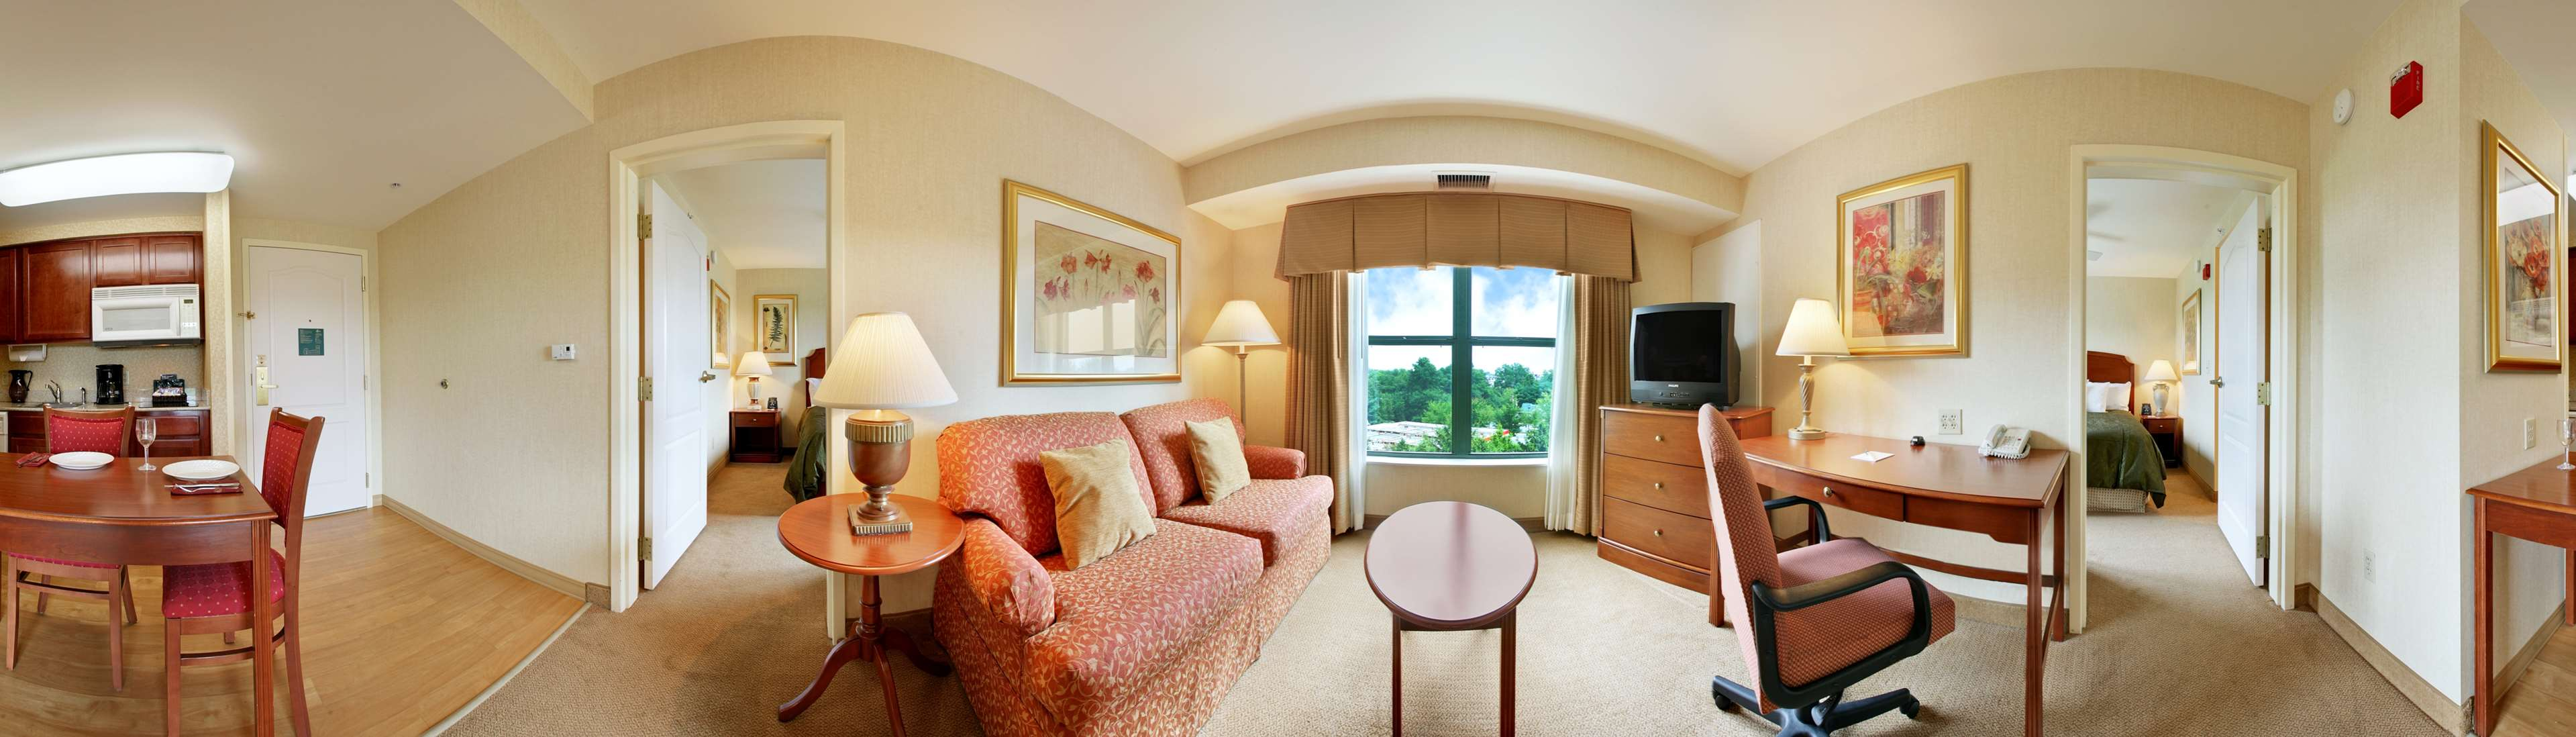 Homewood Suites by Hilton Columbia image 16